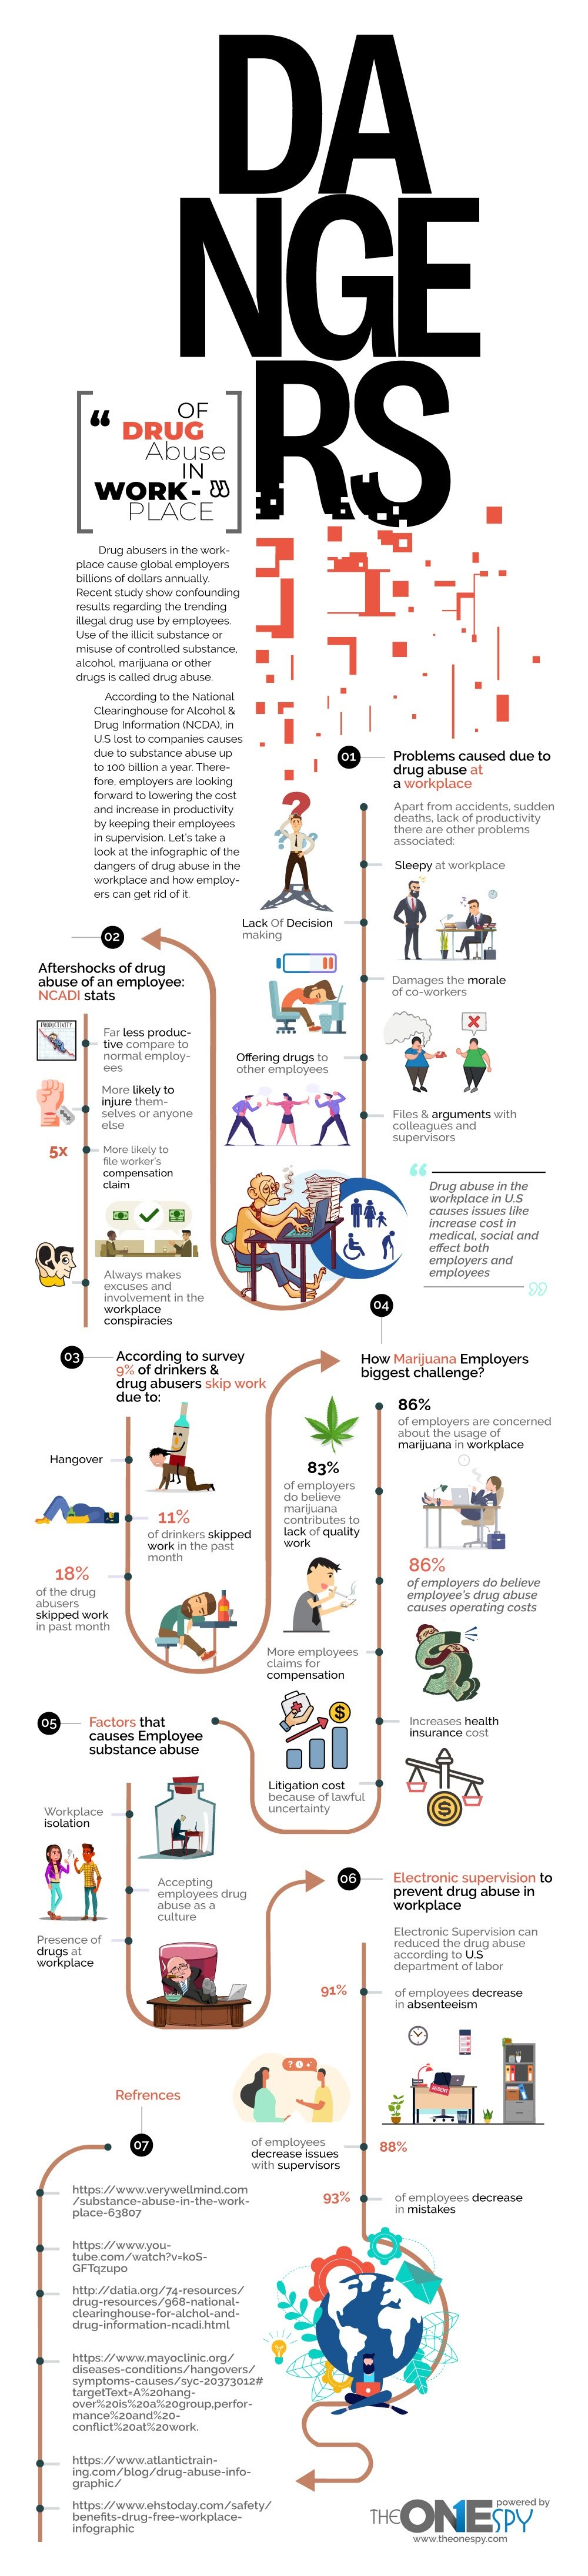 Dangers of Drug Abuse in Workplace #infographic